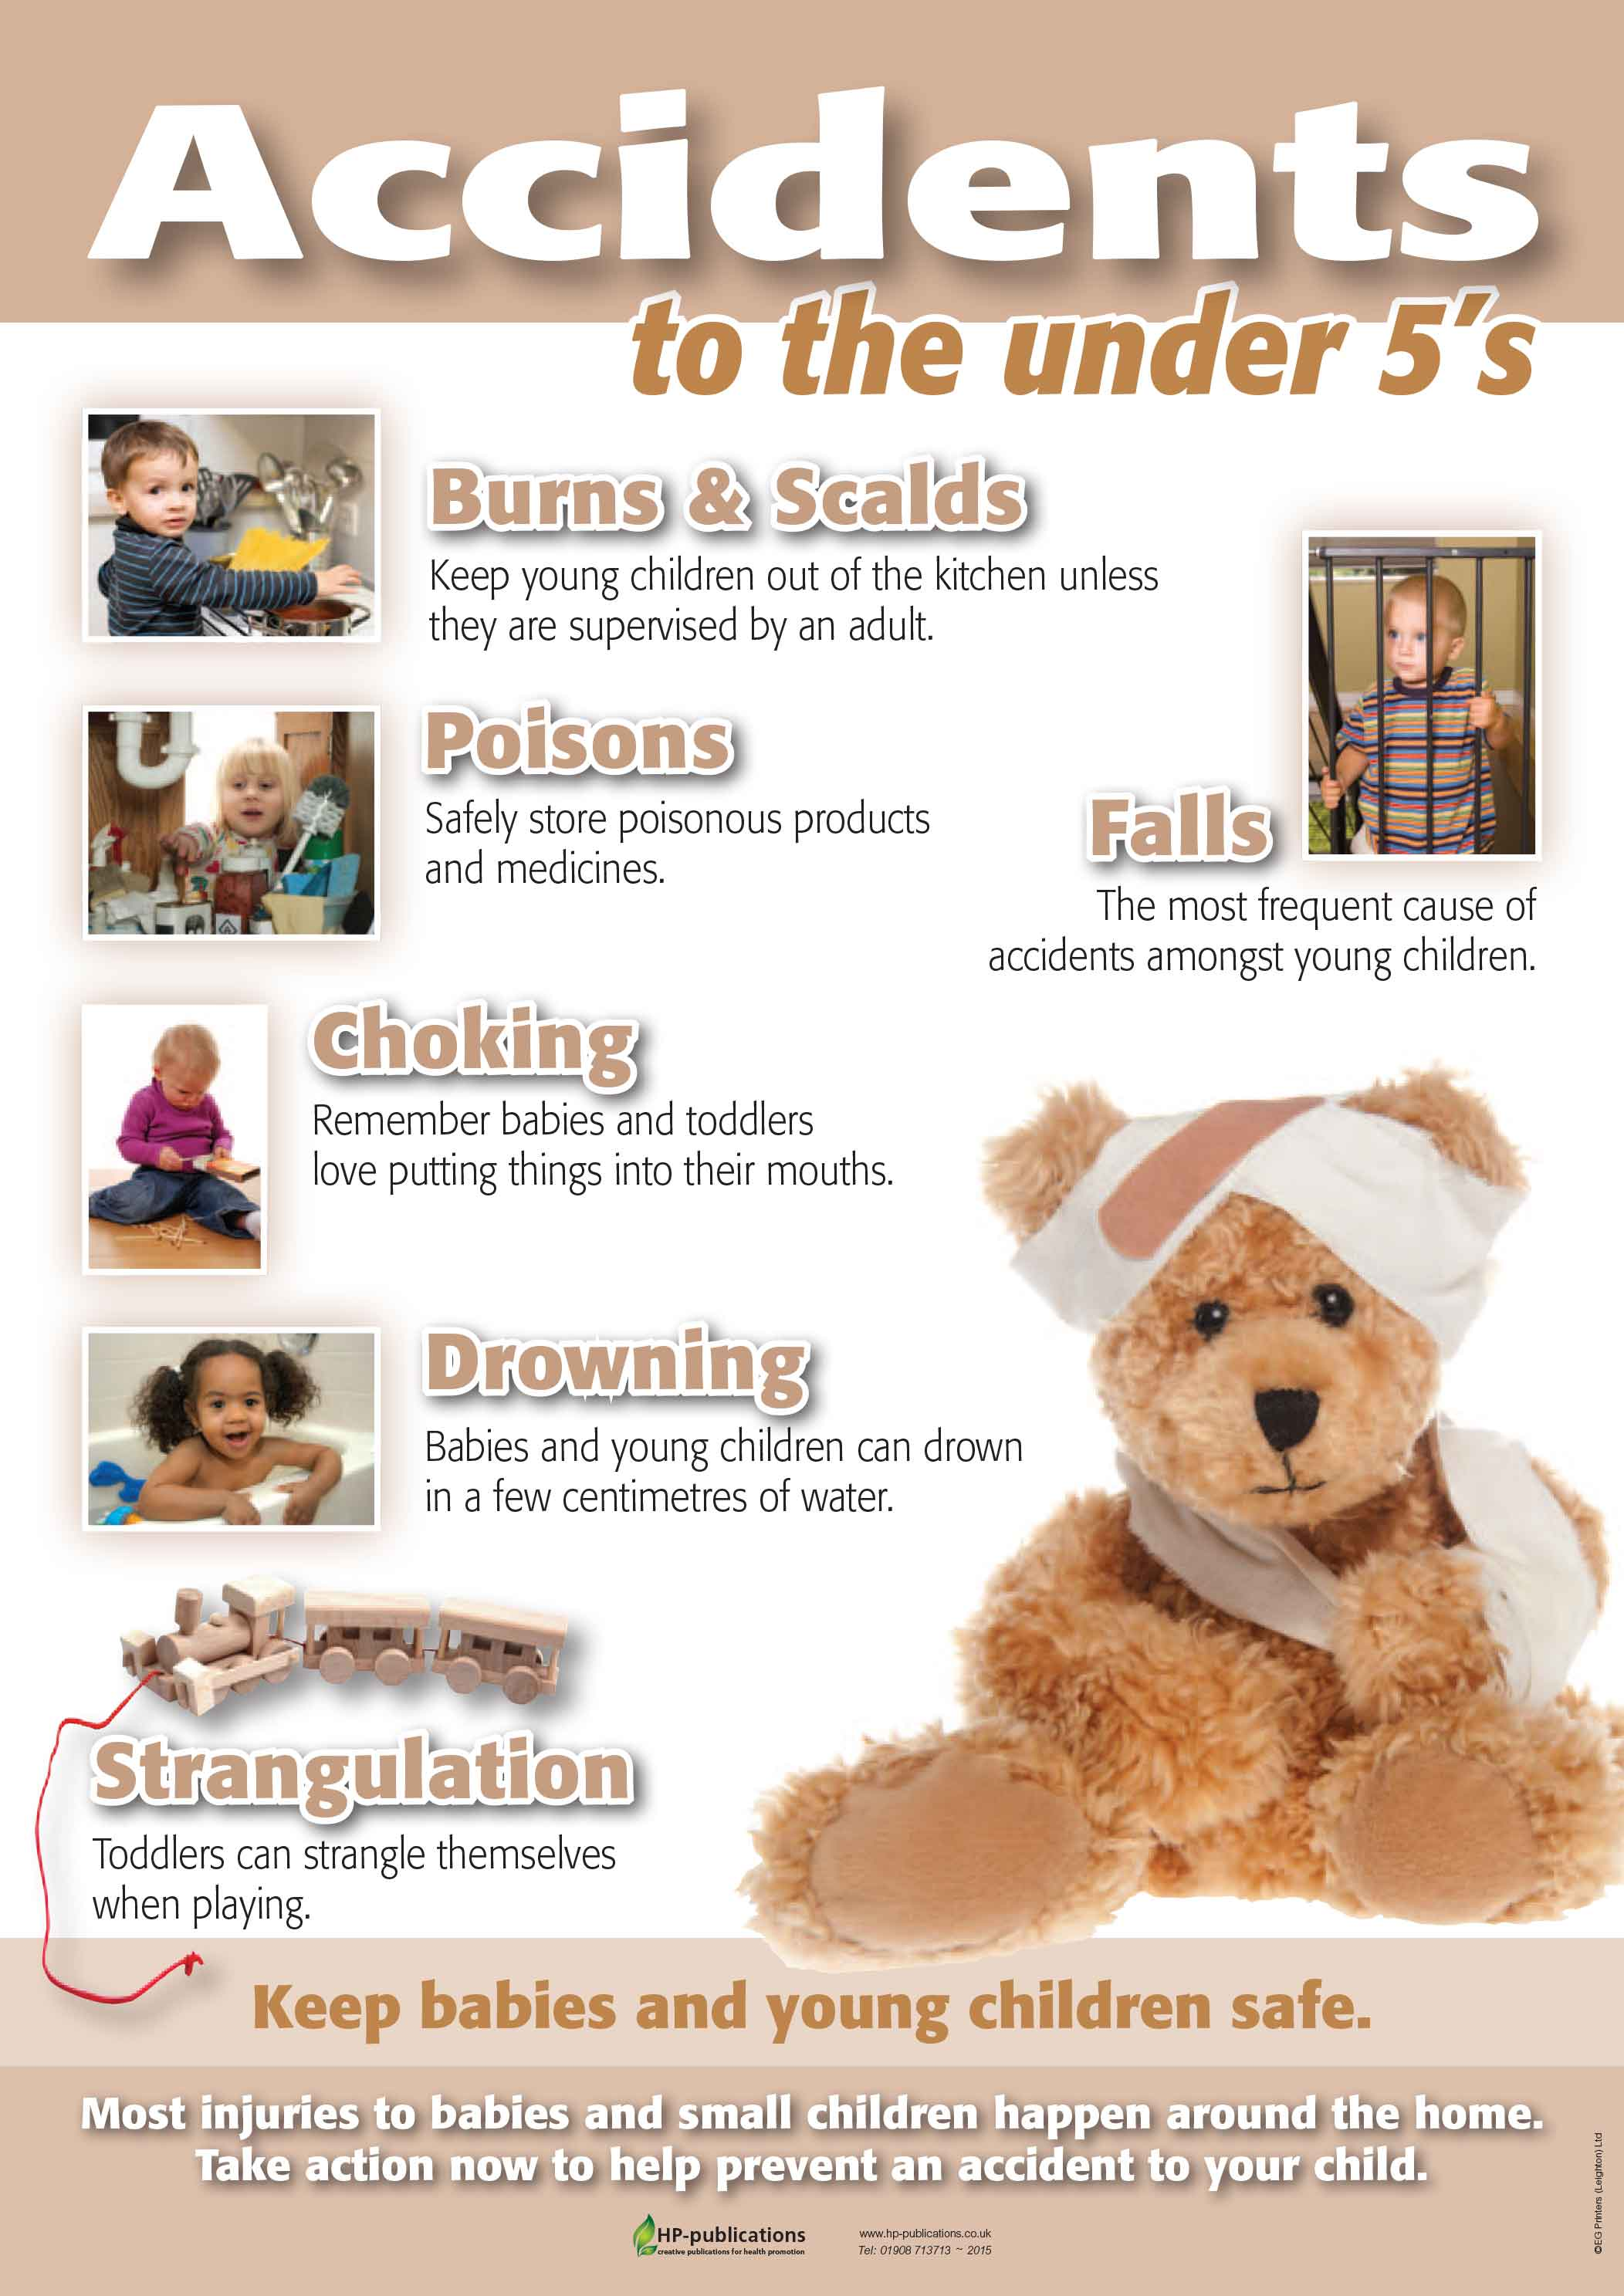 Accidents to the under 5's